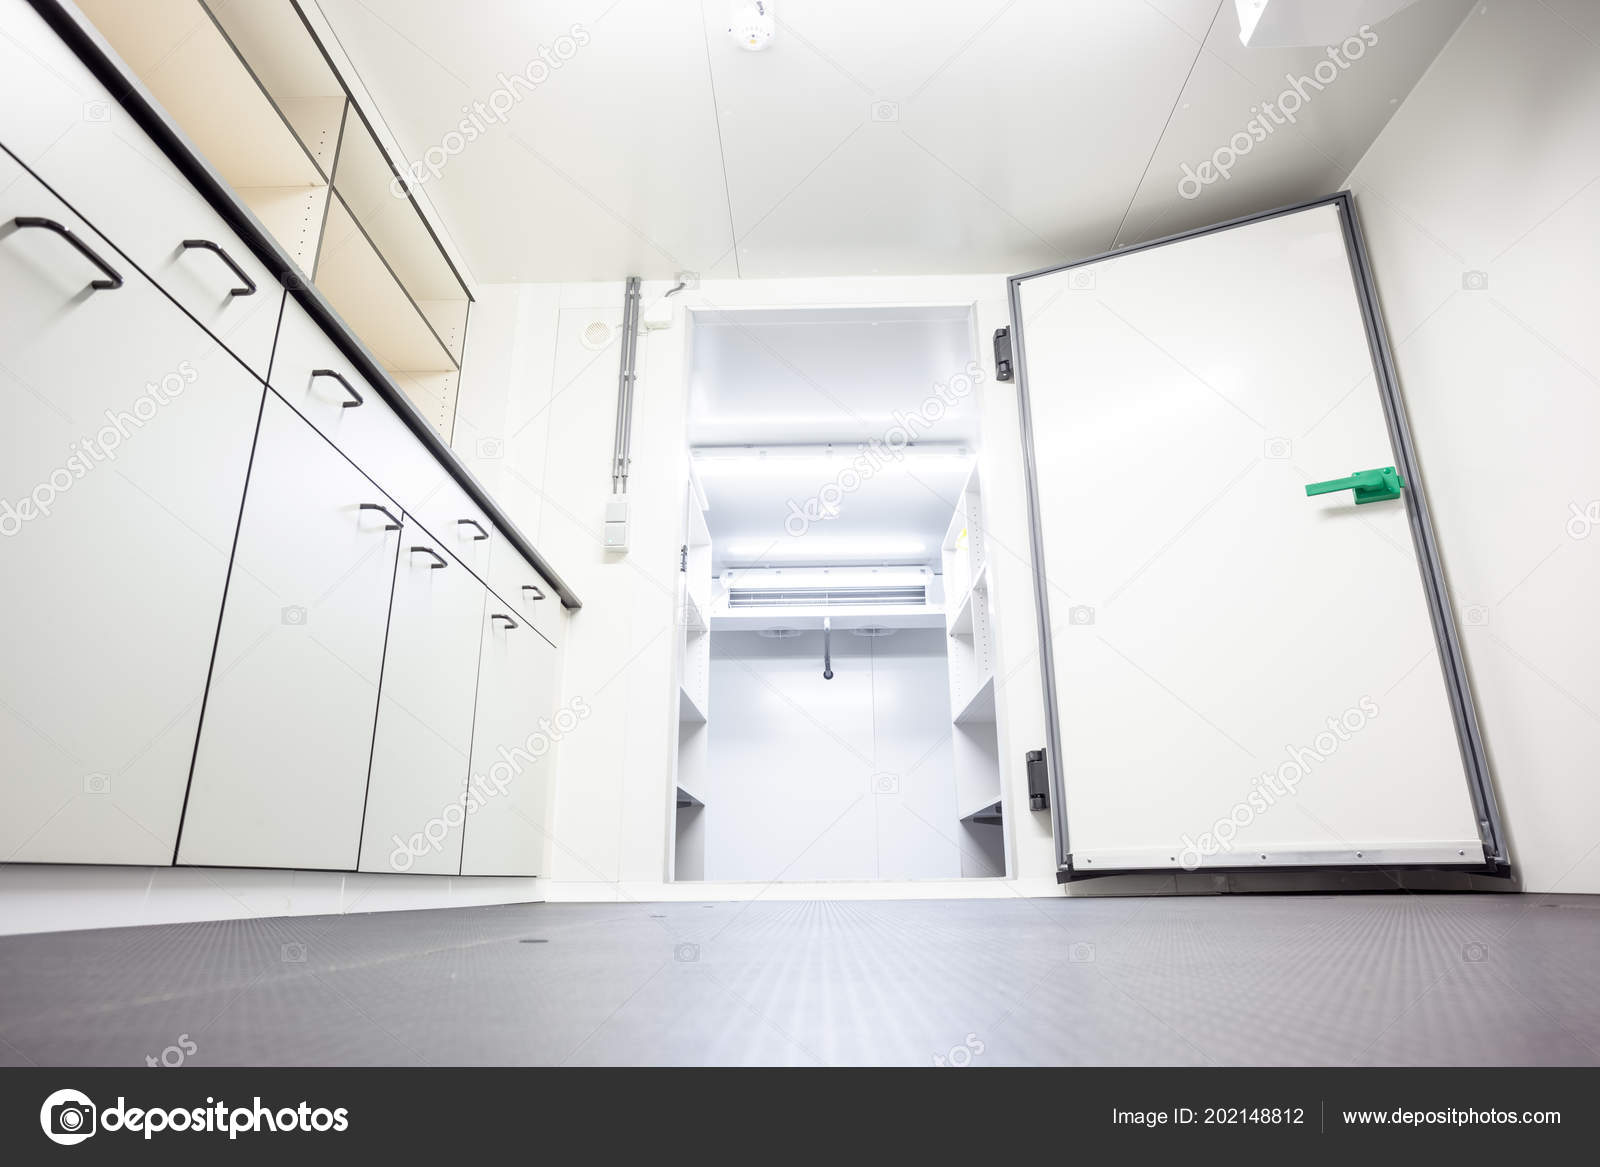 An Empty Industrial Room Refrigerator With Four Fans Photo By DenBoma